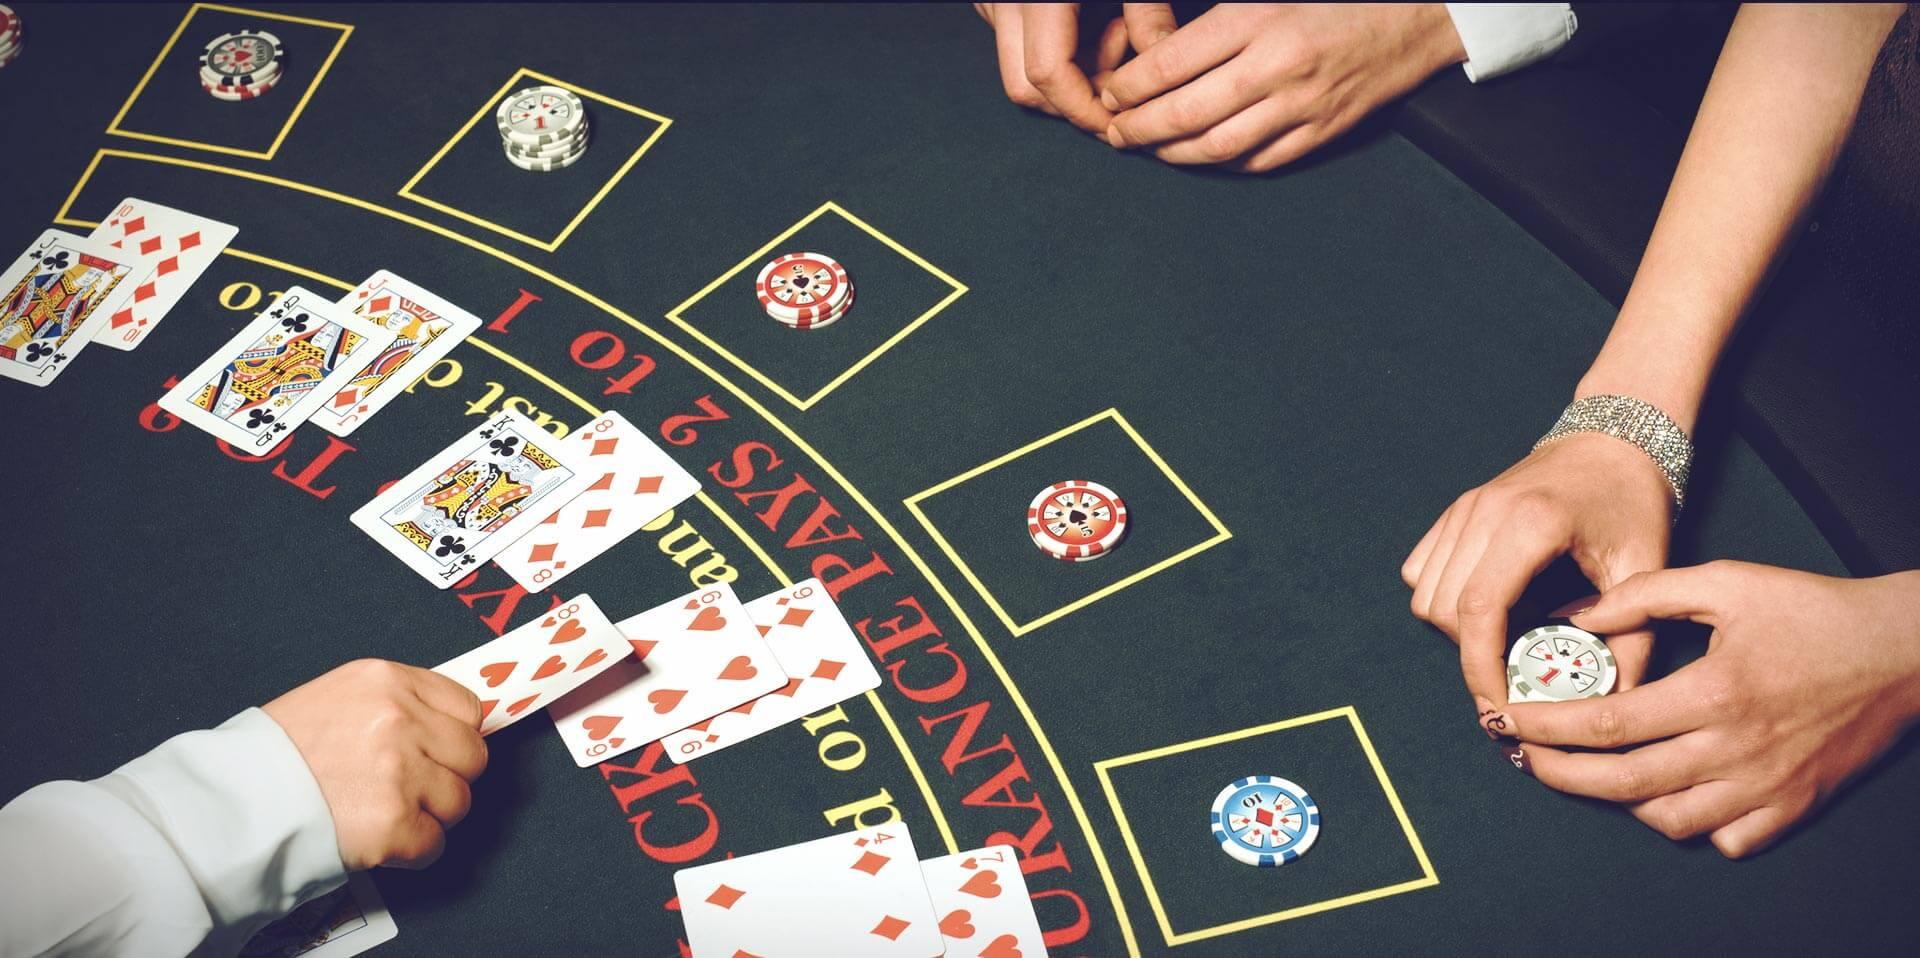 The Martingale Blackjack Betting System